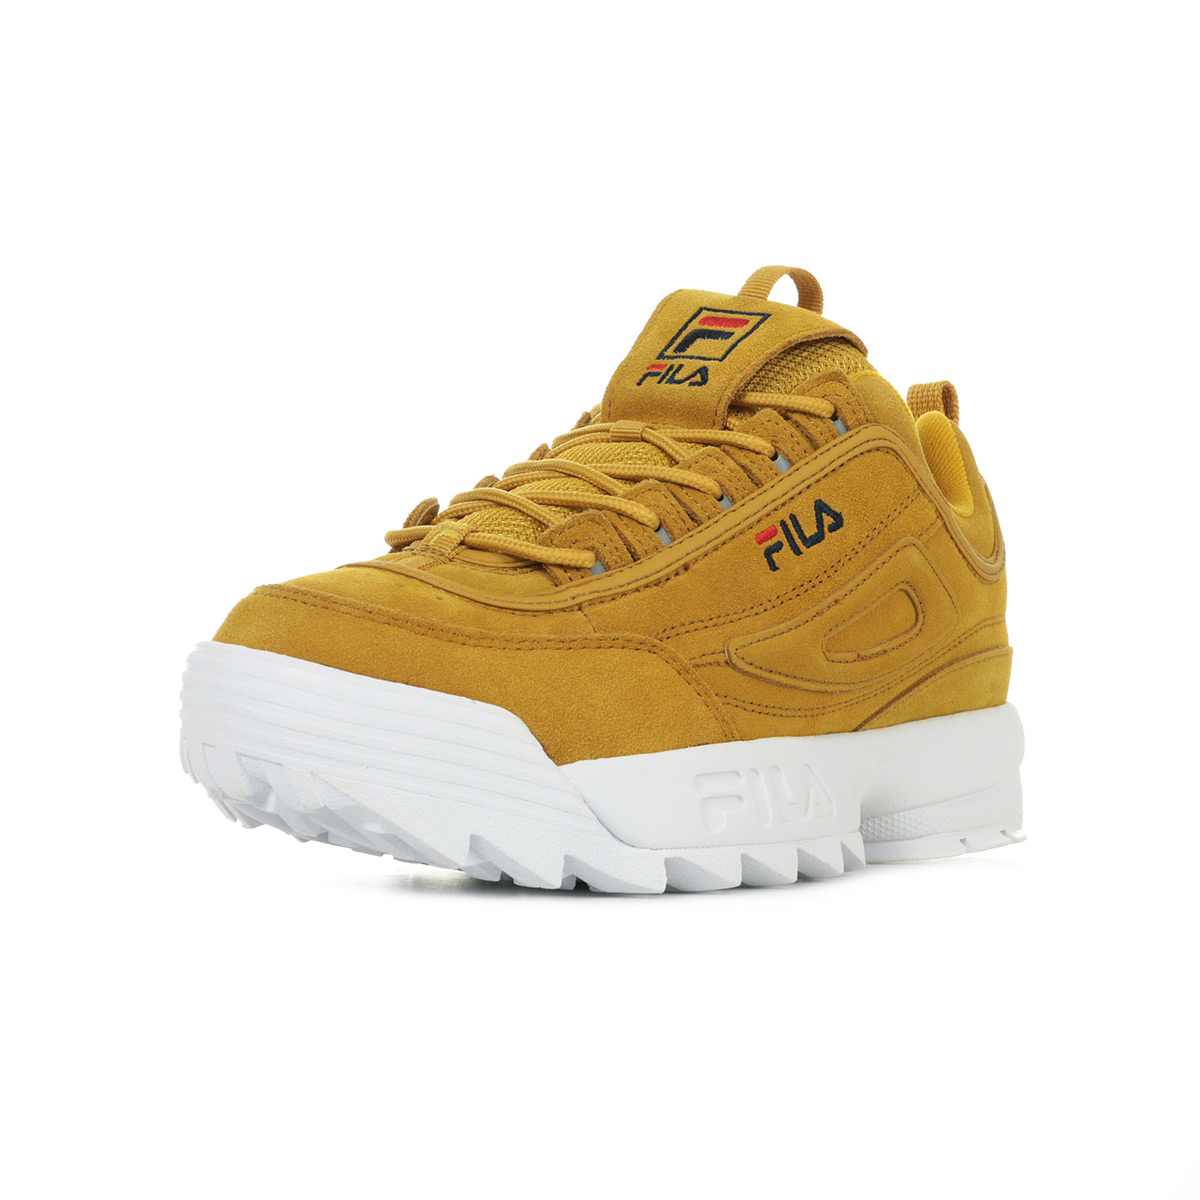 S Fila Mode Disruptor Homme Gold 101057760iBaskets Low Inca j34SRL5Acq